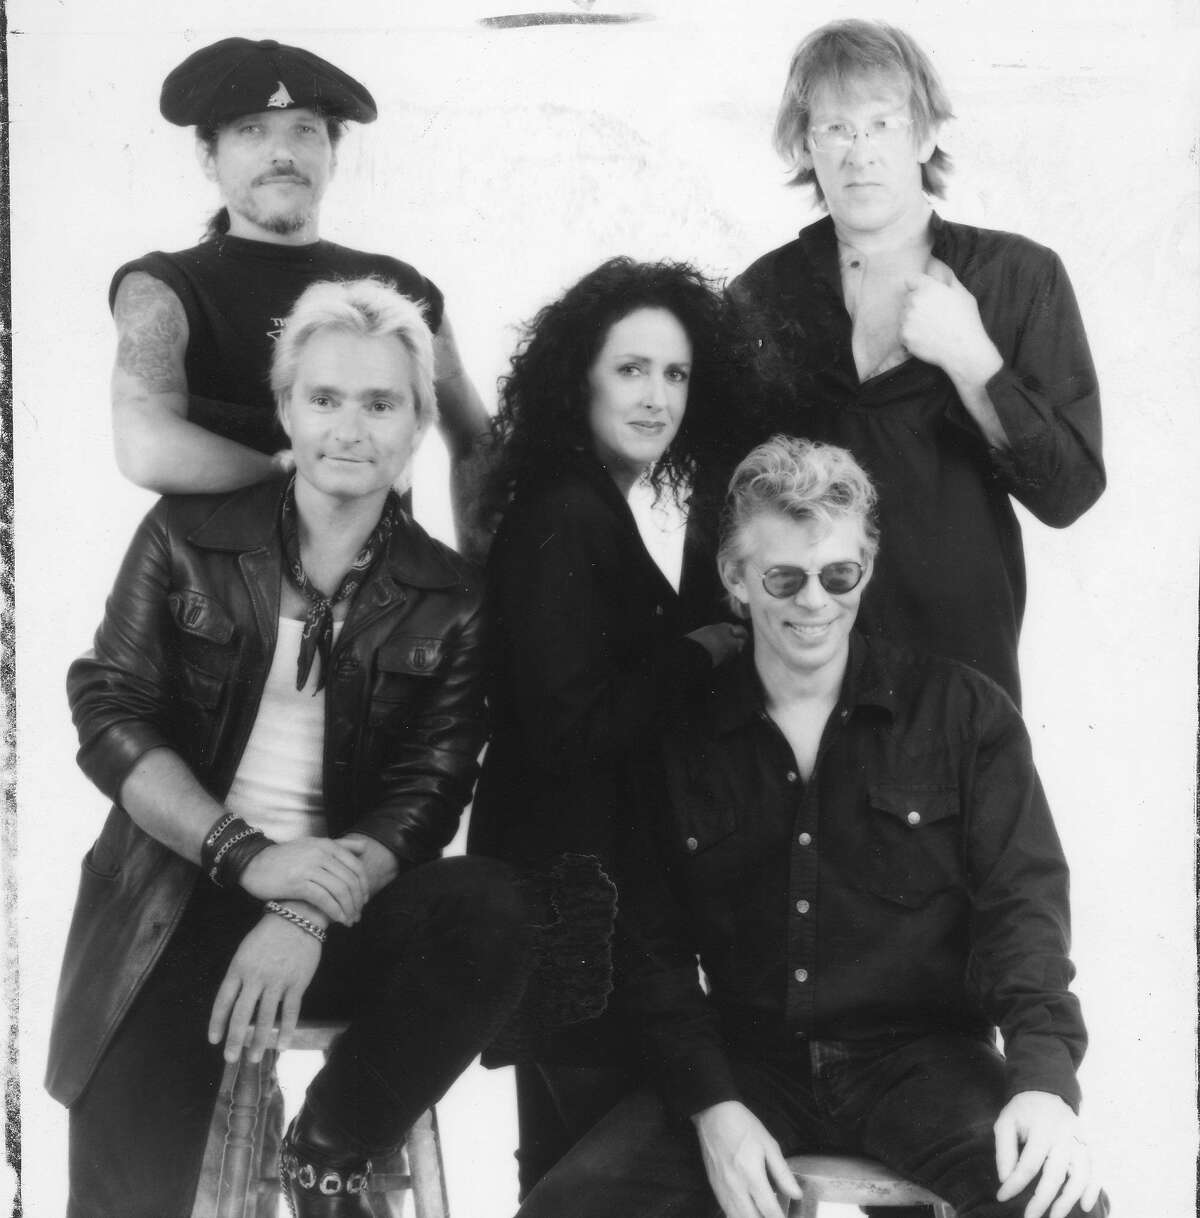 Members of Jefferson Airplane, a popular San Francisco band during the Summer of Love, would put together a reunion tour and album (Left to right) top row: Jorma Kaukonen and Paul Kantner lower row, Marty Balin, Grace Slick and Jack Casady Handout photo ran 09/17/1989, Sunday Datebook, p. 53